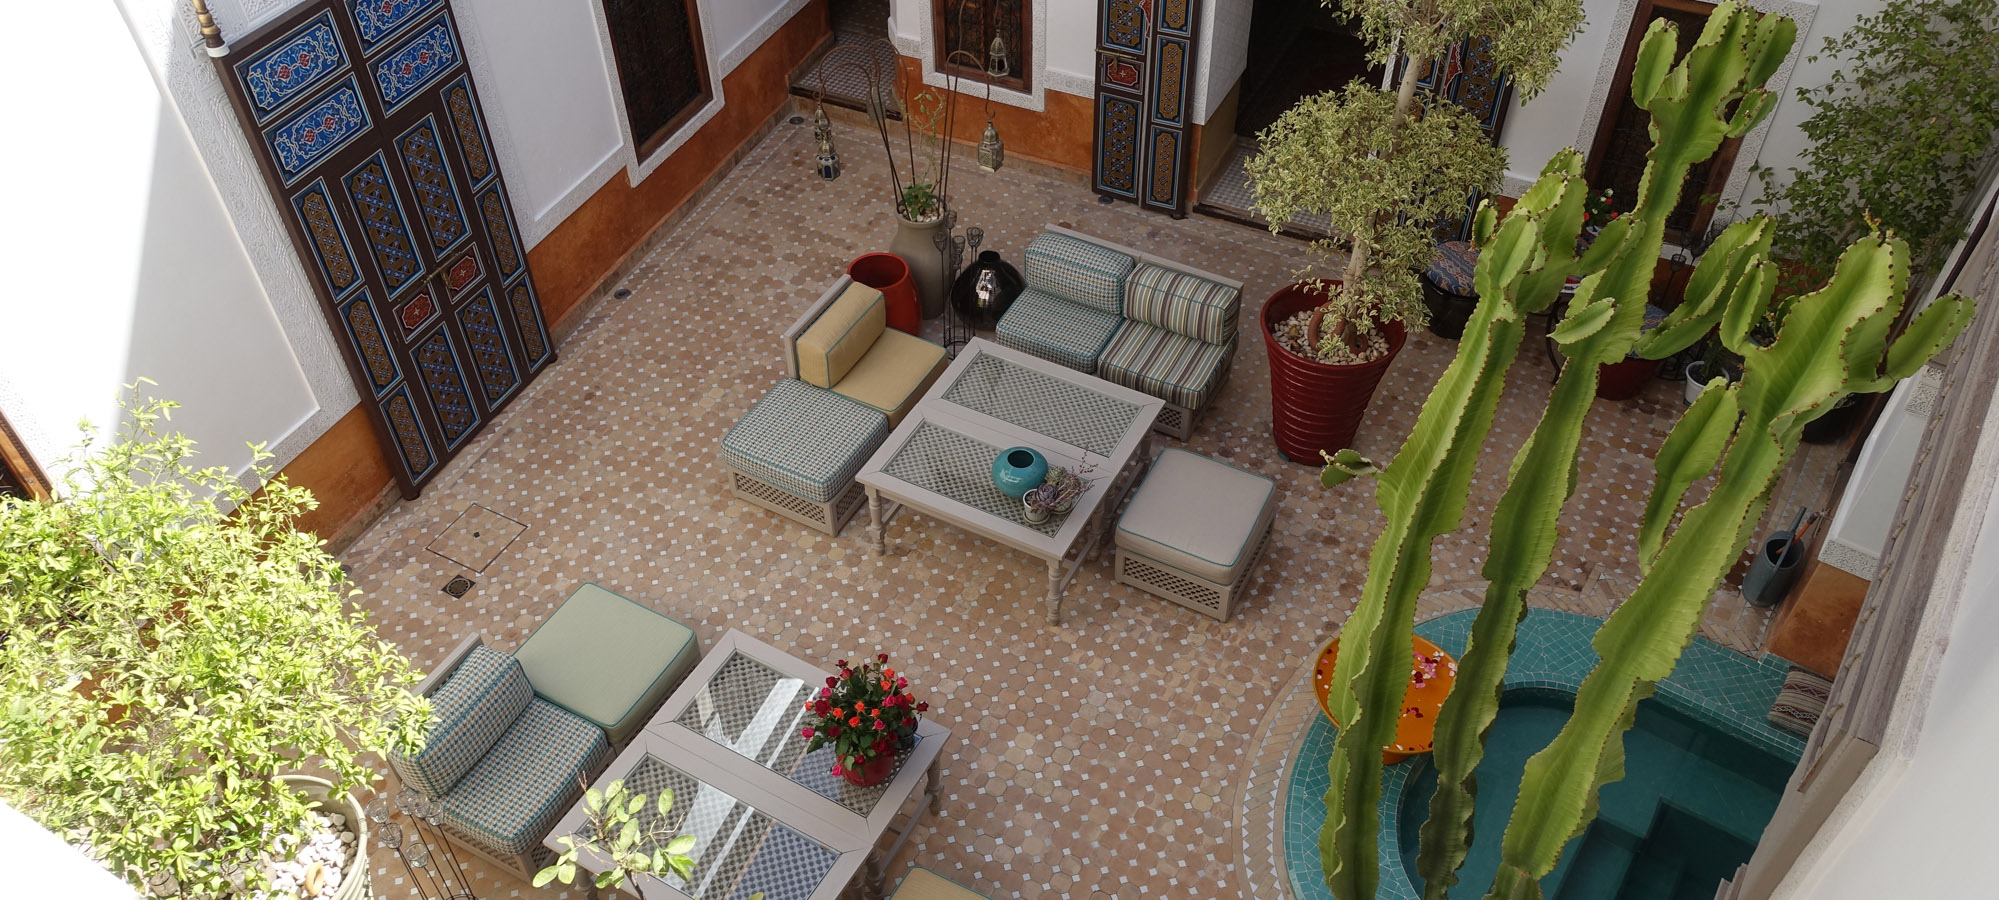 7. Gallery Riad Courtyard